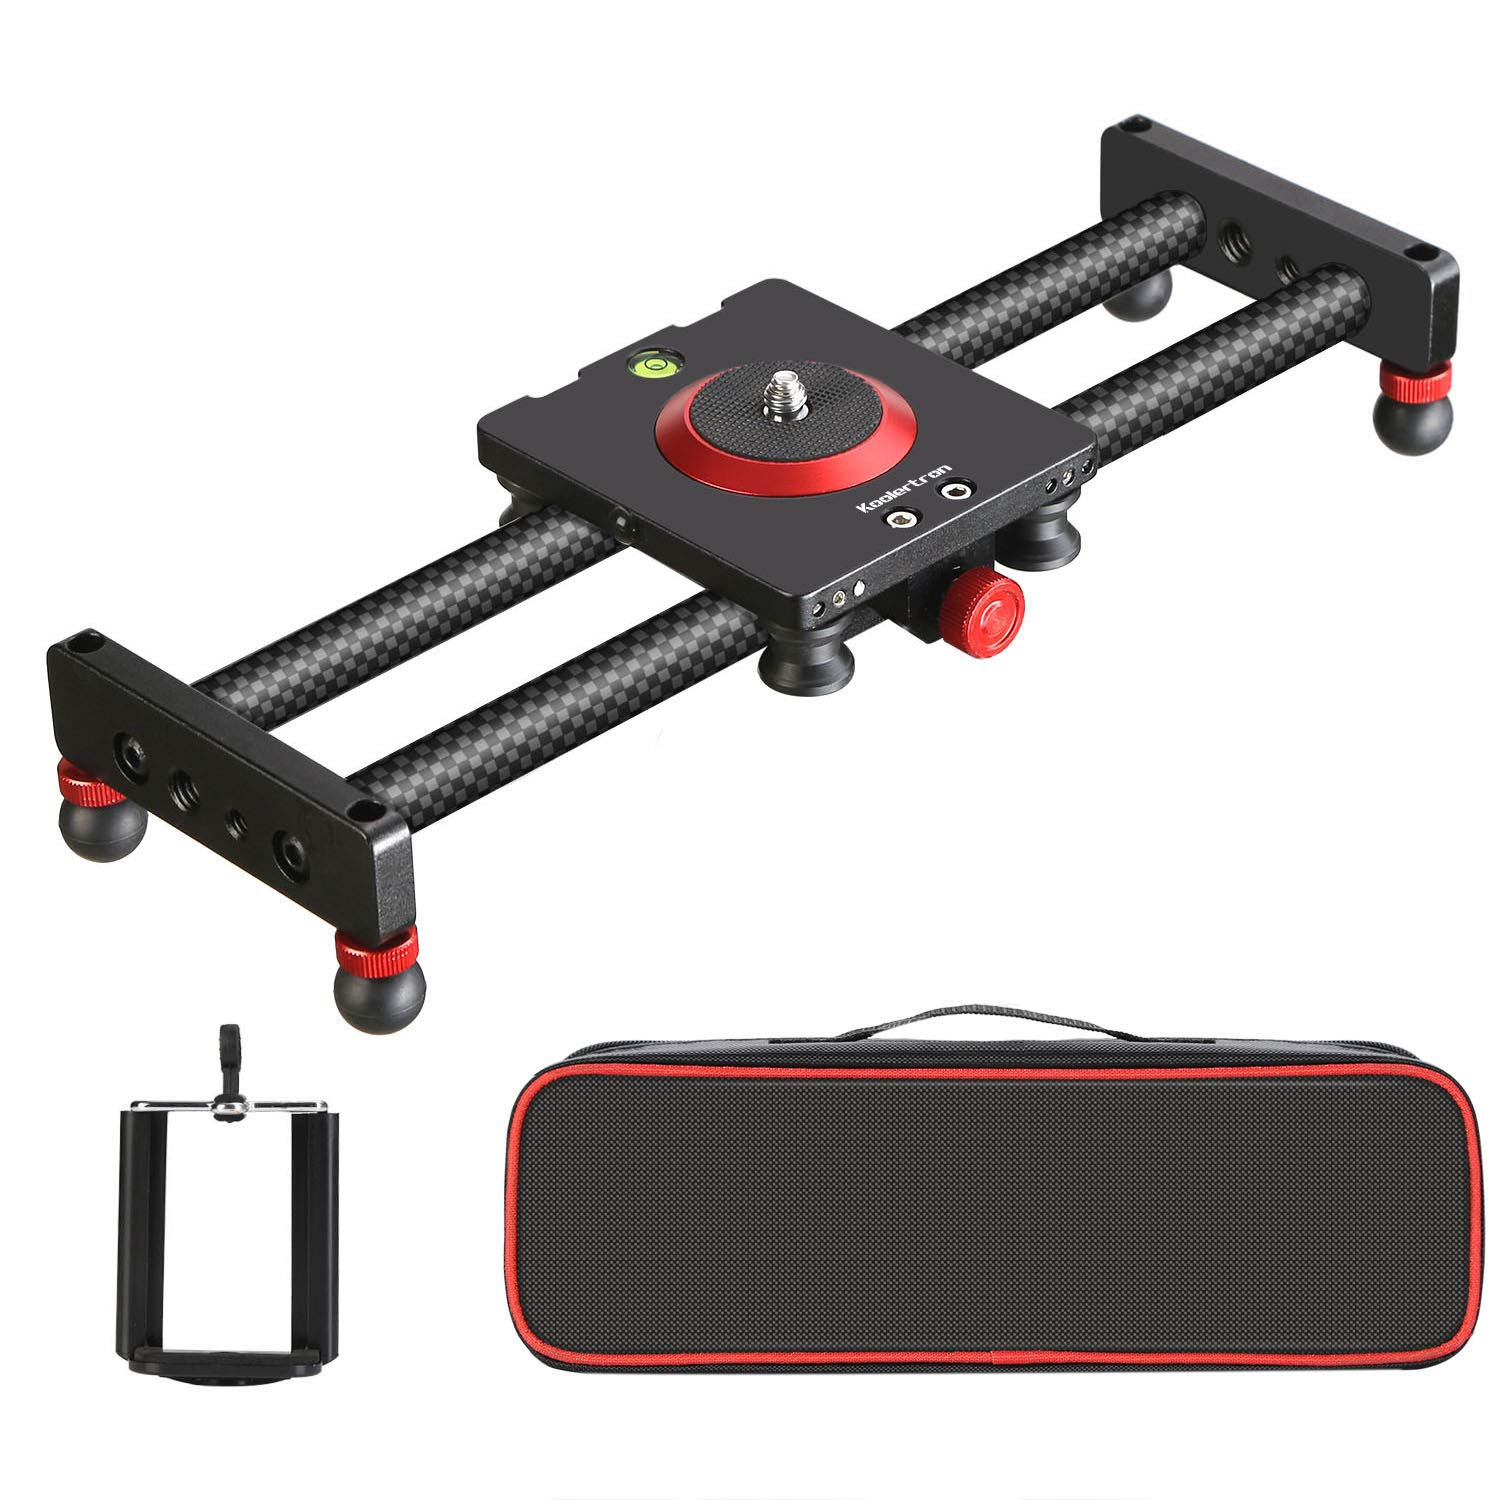 Koolertron Portable Carbon Fiber Camera Slider Dolly Track with 4 Roller Bearing for Video Movie Photography Making Stabilizing Nikon Canon Pentax Sony Cameras 11.02lbs Loading by Koolertron